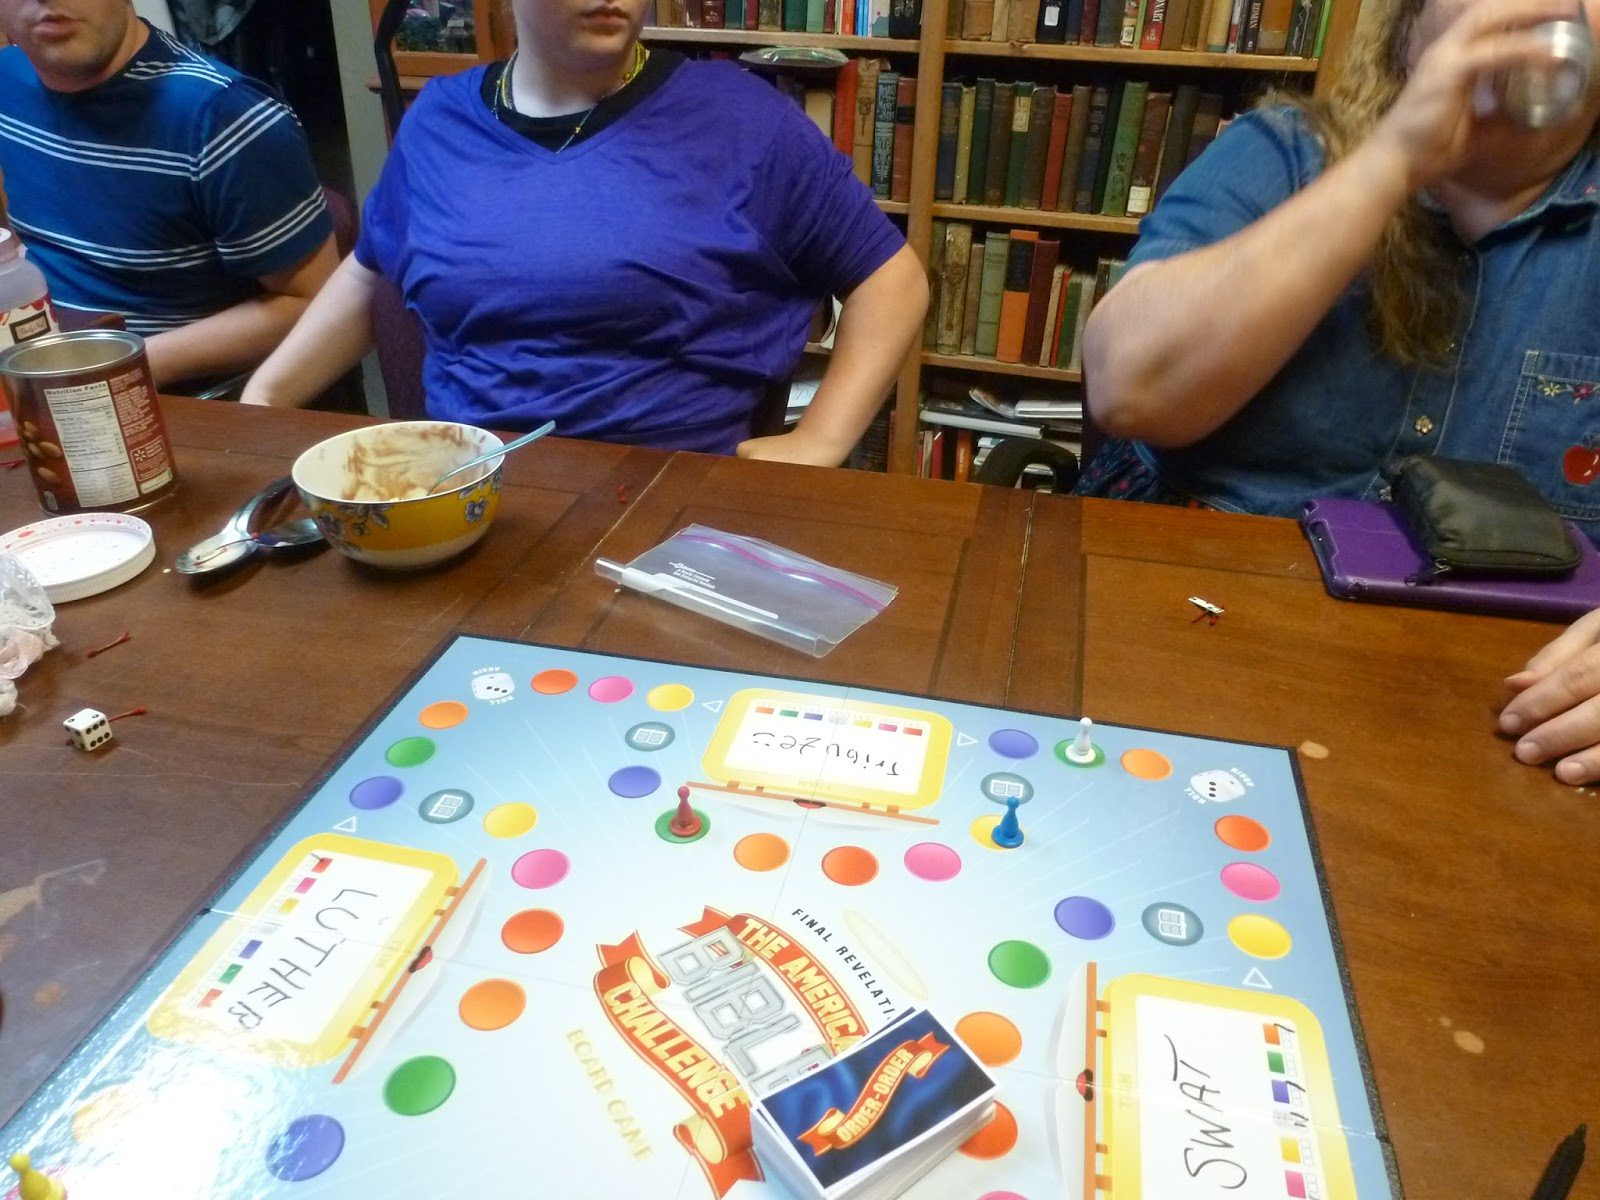 Giveaway Lady: Saturday Night Game Night!! With $25 Family